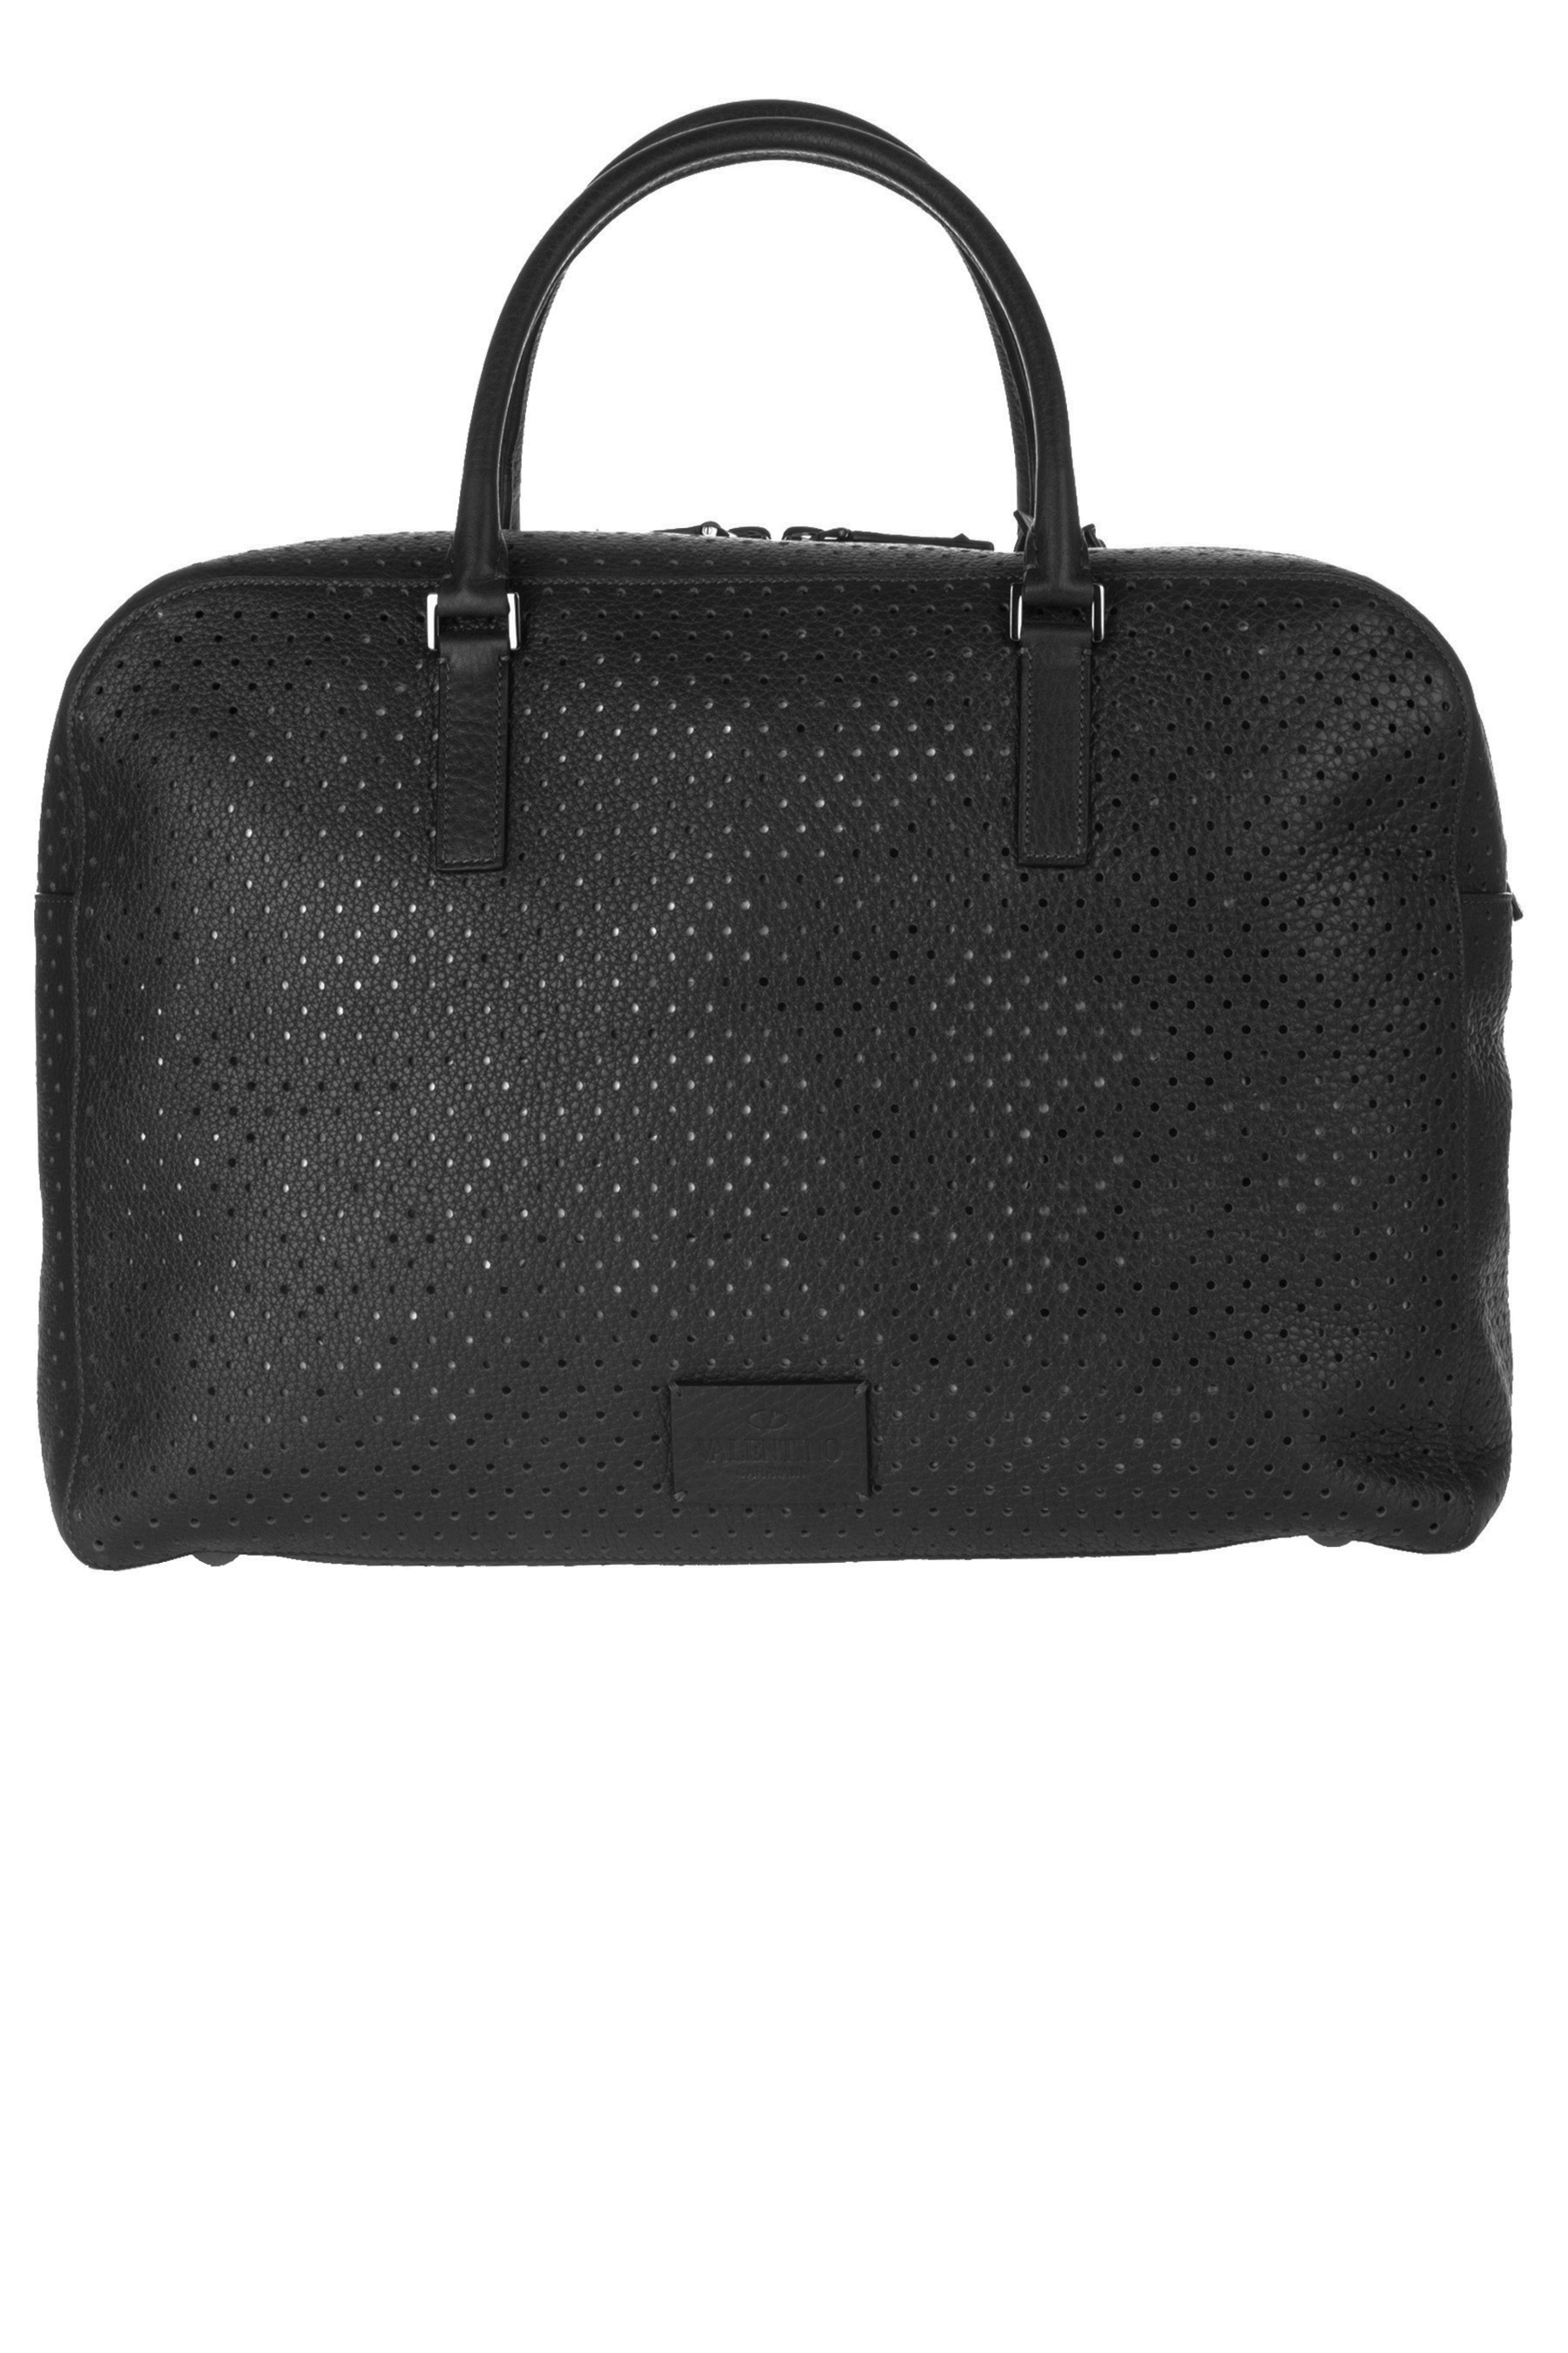 3ef51ddf34 VALENTINO GARAVANI Perforated Leather Briefcase | Bags | Bags ...